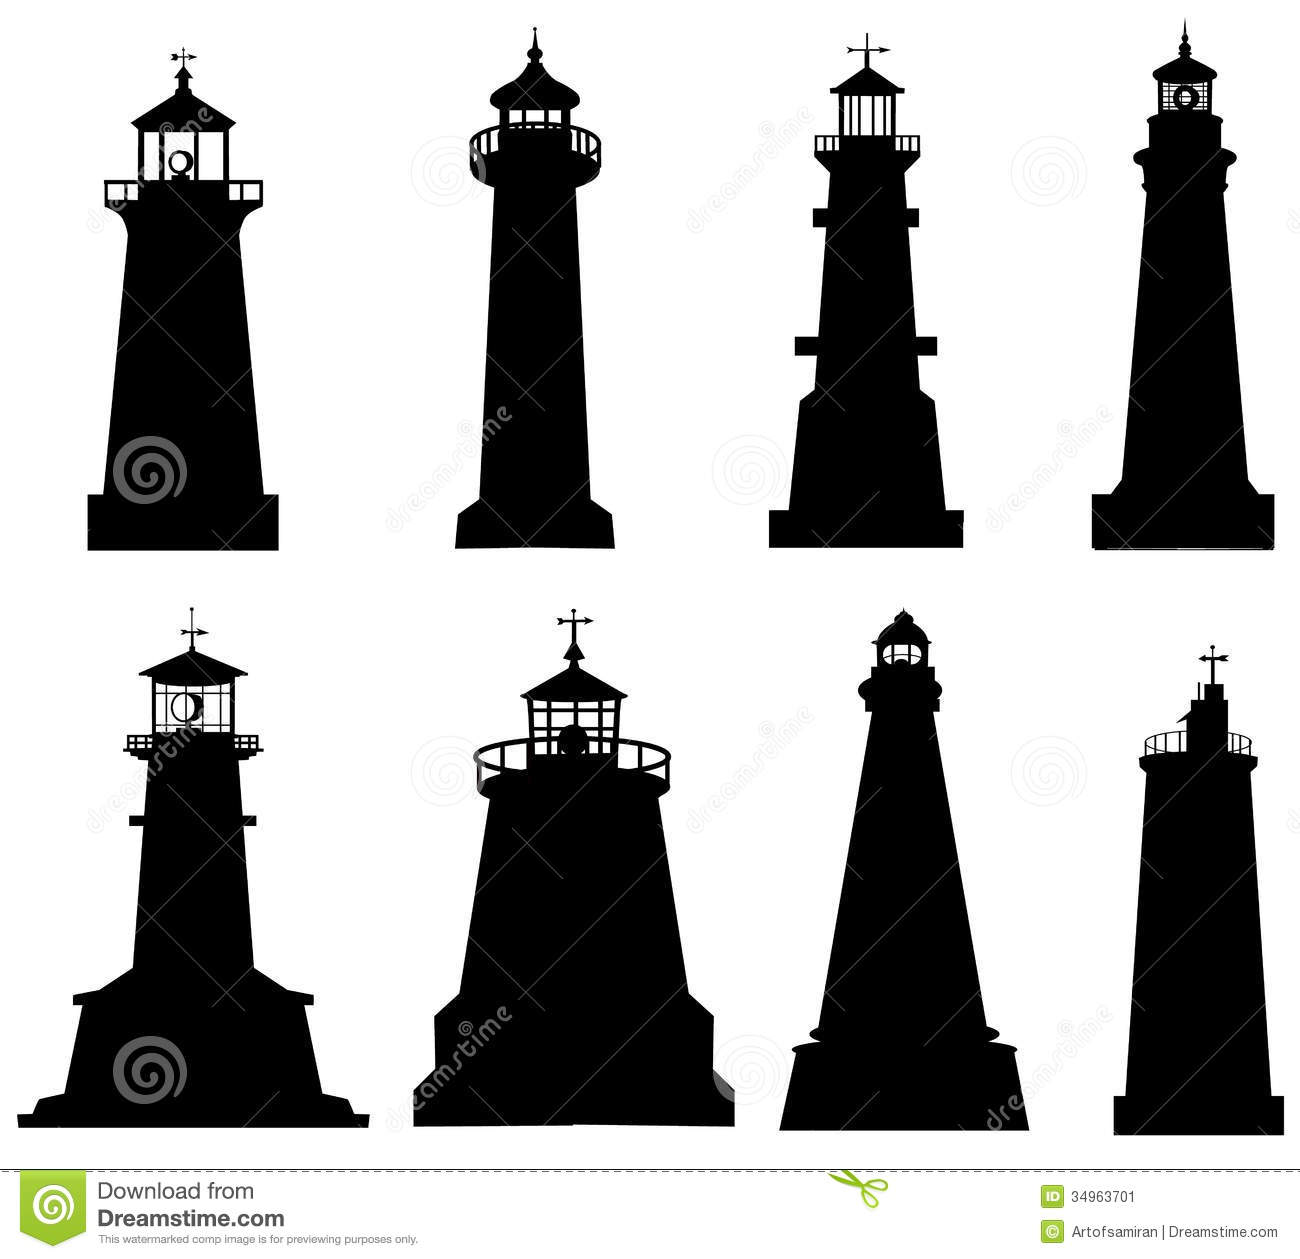 Lighhouse clipart silhouette Clipart Silhouette Silhouette Clipart Download